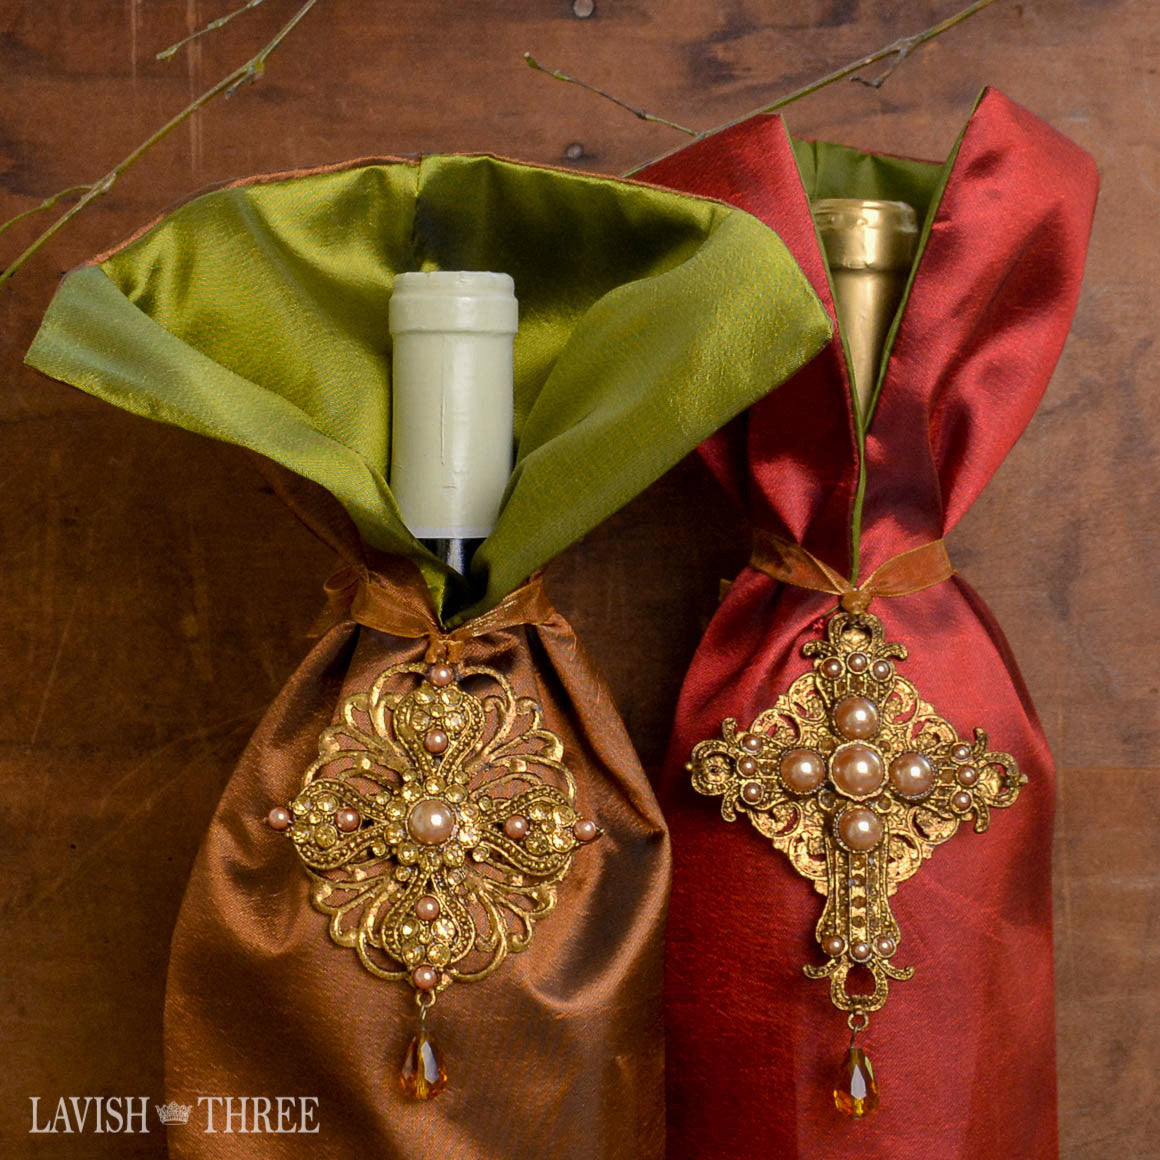 Elegant fancy satin bottle wine dresses, gift bags in copper & merlot